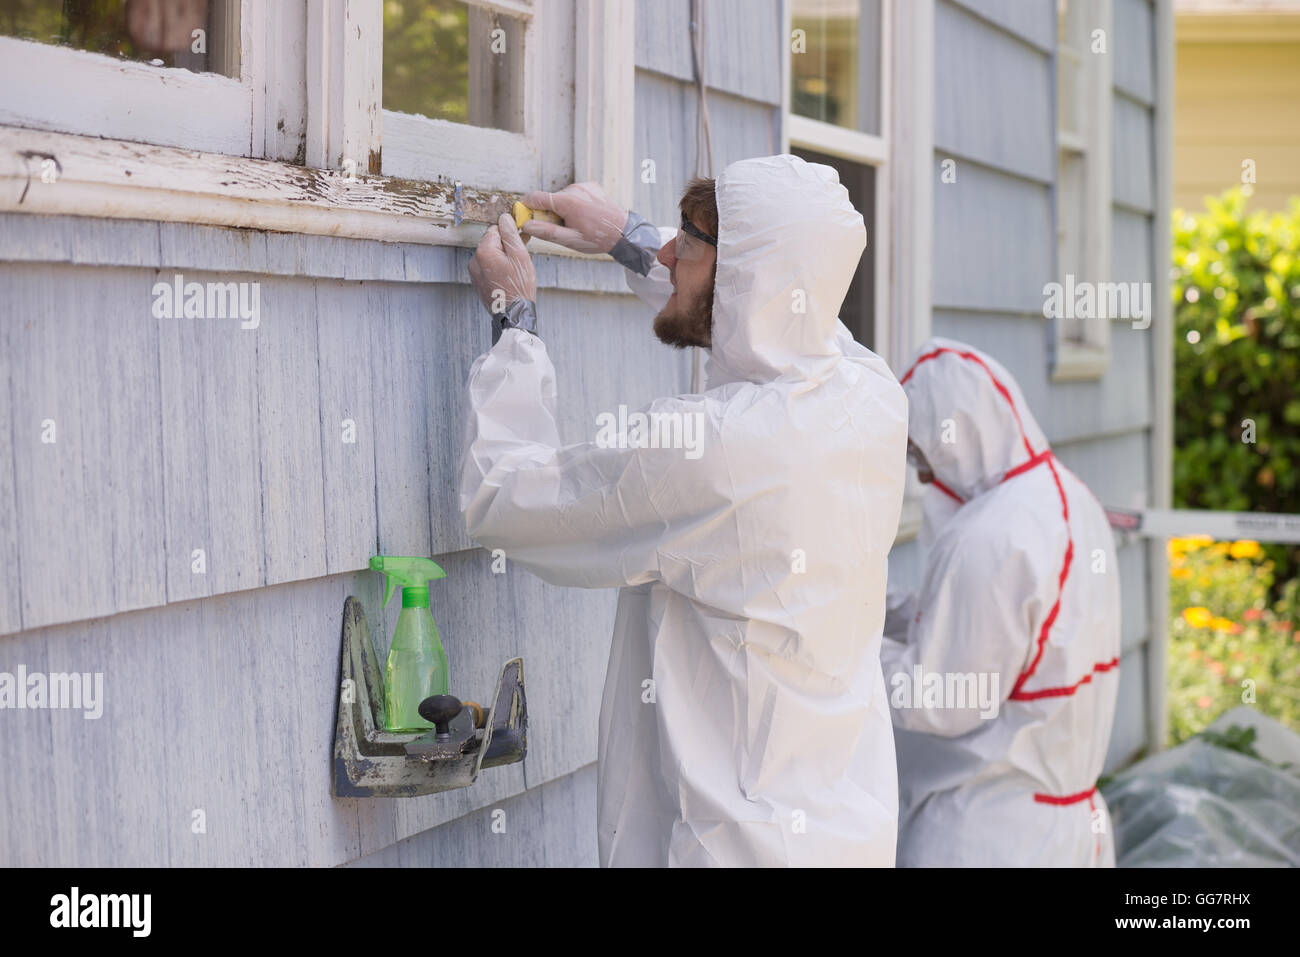 Two house painters in hazmat suits removing lead paint from an old house. - Stock Image